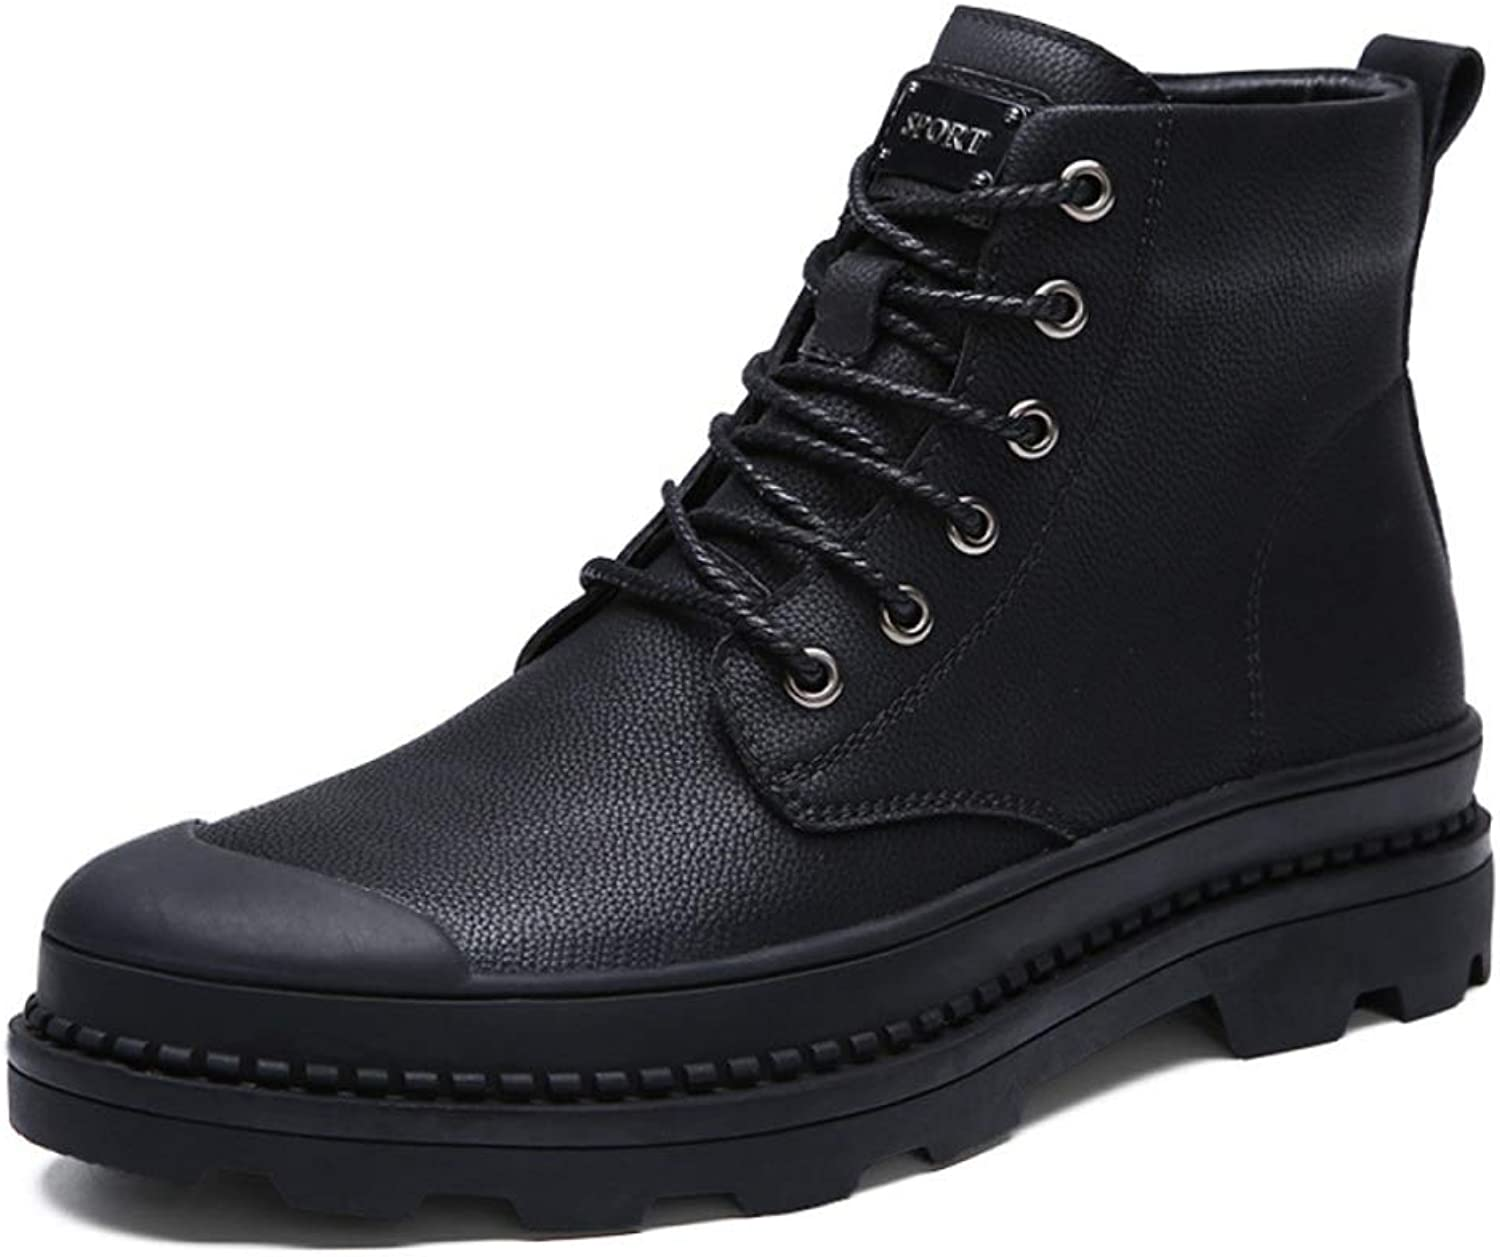 Men'S Boots Martin Boots Cotton shoes Winter High To Help Military Boots Warm Plus Velvet Cotton shoes Snow Boots